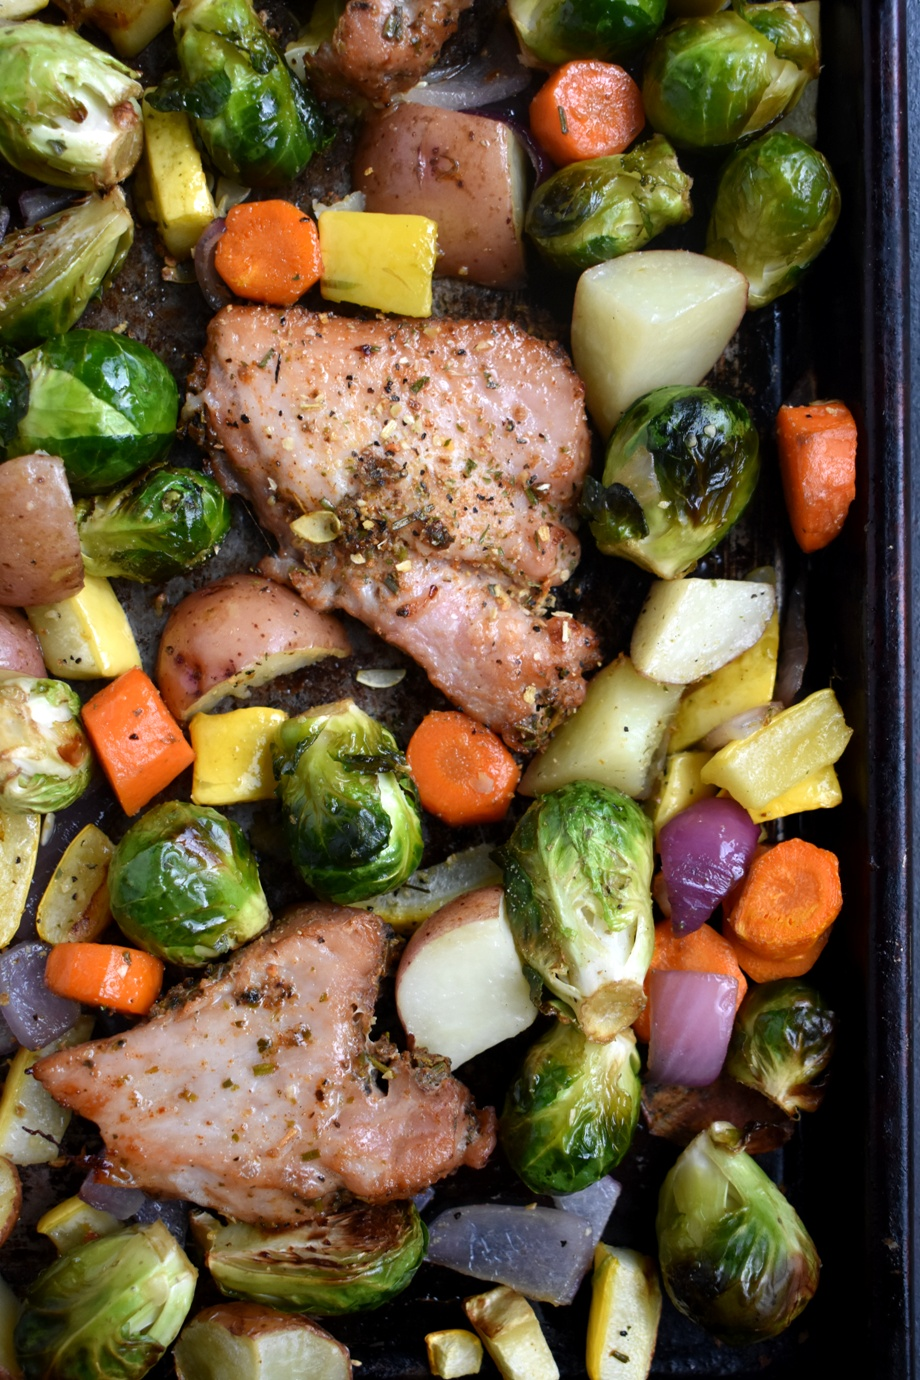 Sheet Pan Garlic Herb Pork and Vegetables is ready in 30 minutes, is full of flavor and only uses one pan for a nutritious and tasty family friendly meal! www.nutritionistreviews.com